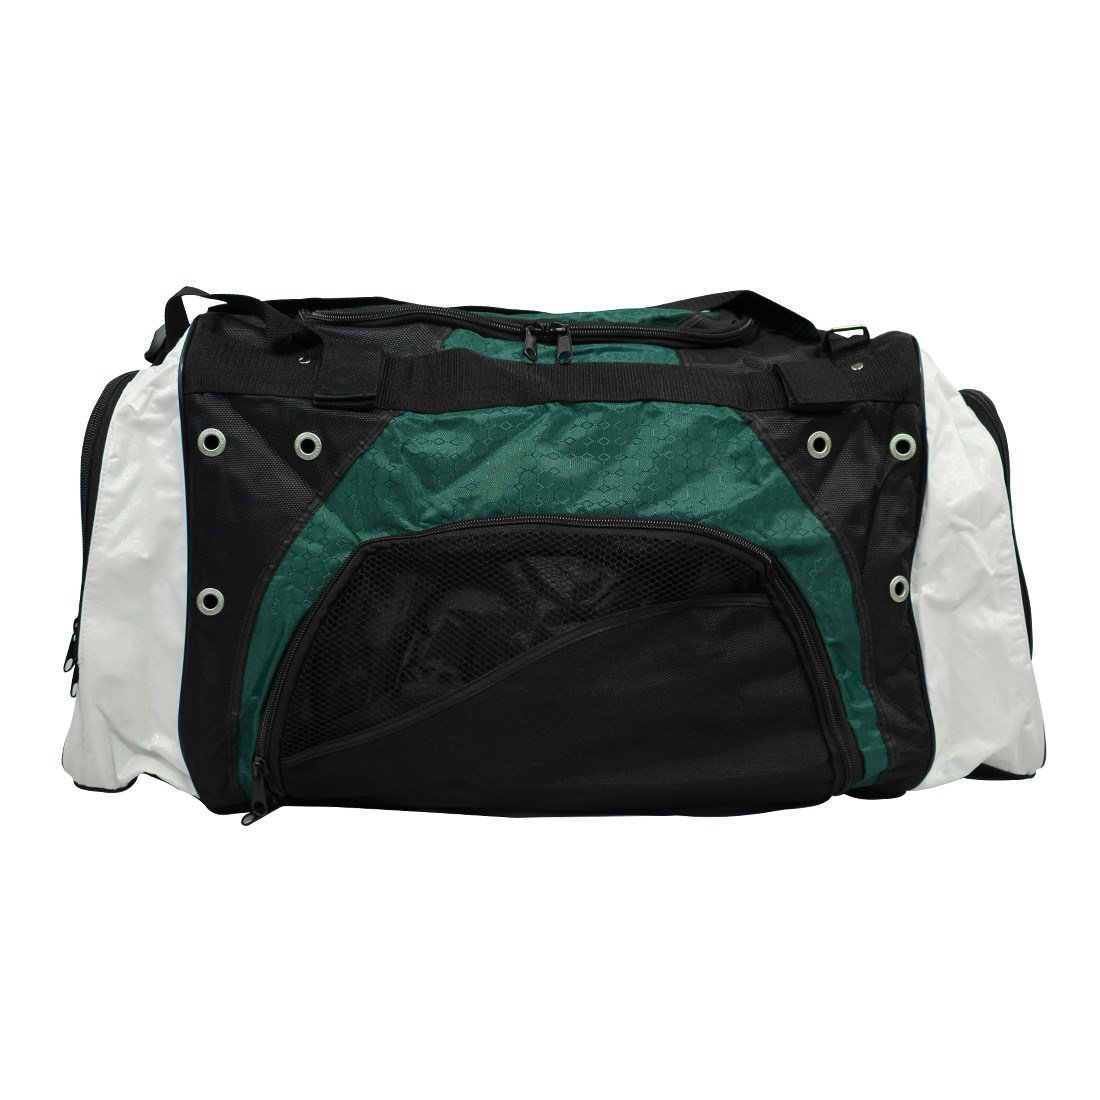 Lacrosse Unlimited Recon Duffle Bag - Green